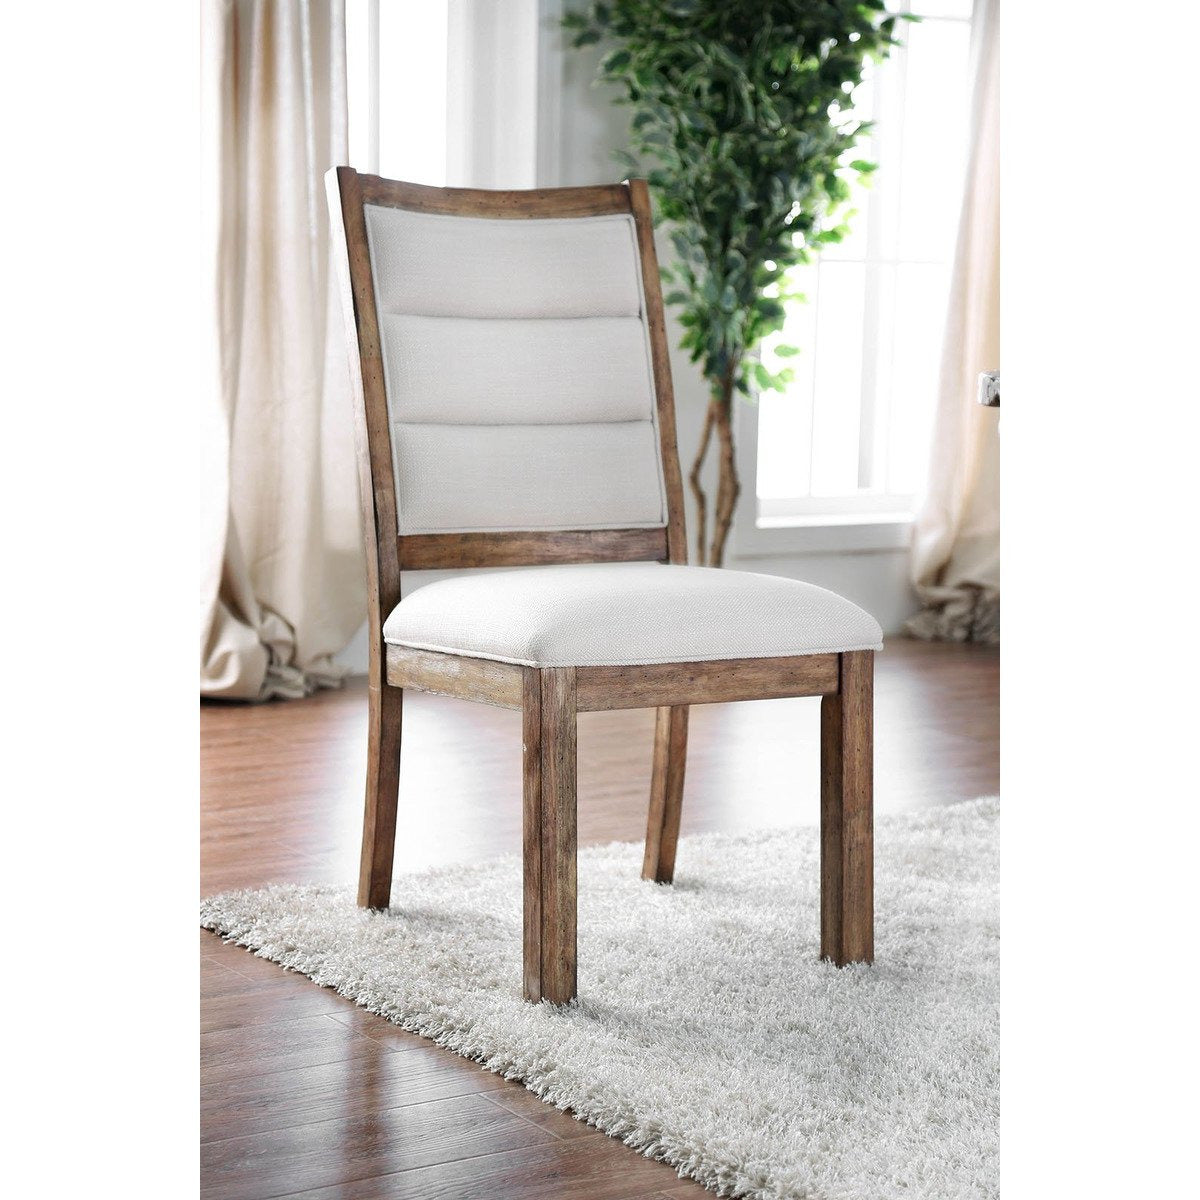 Dining Chairs - Linen Like Fabric Upholstered Solid Wood Side Chair In Rustic Style, White And Brown, Pack Of Two